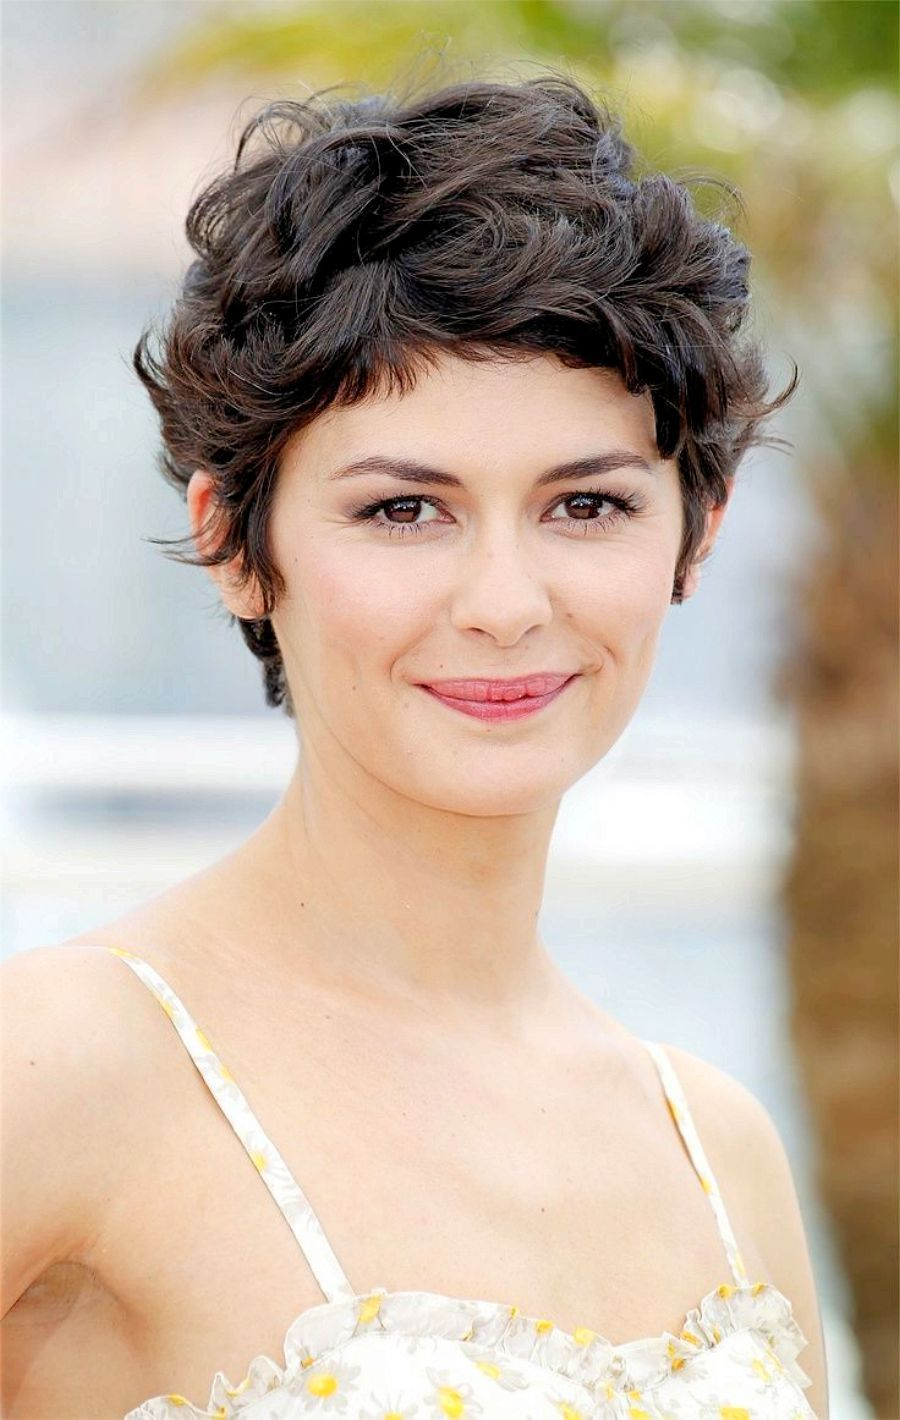 Hairstyles For Short Curly Hair Women favorite hairstyle